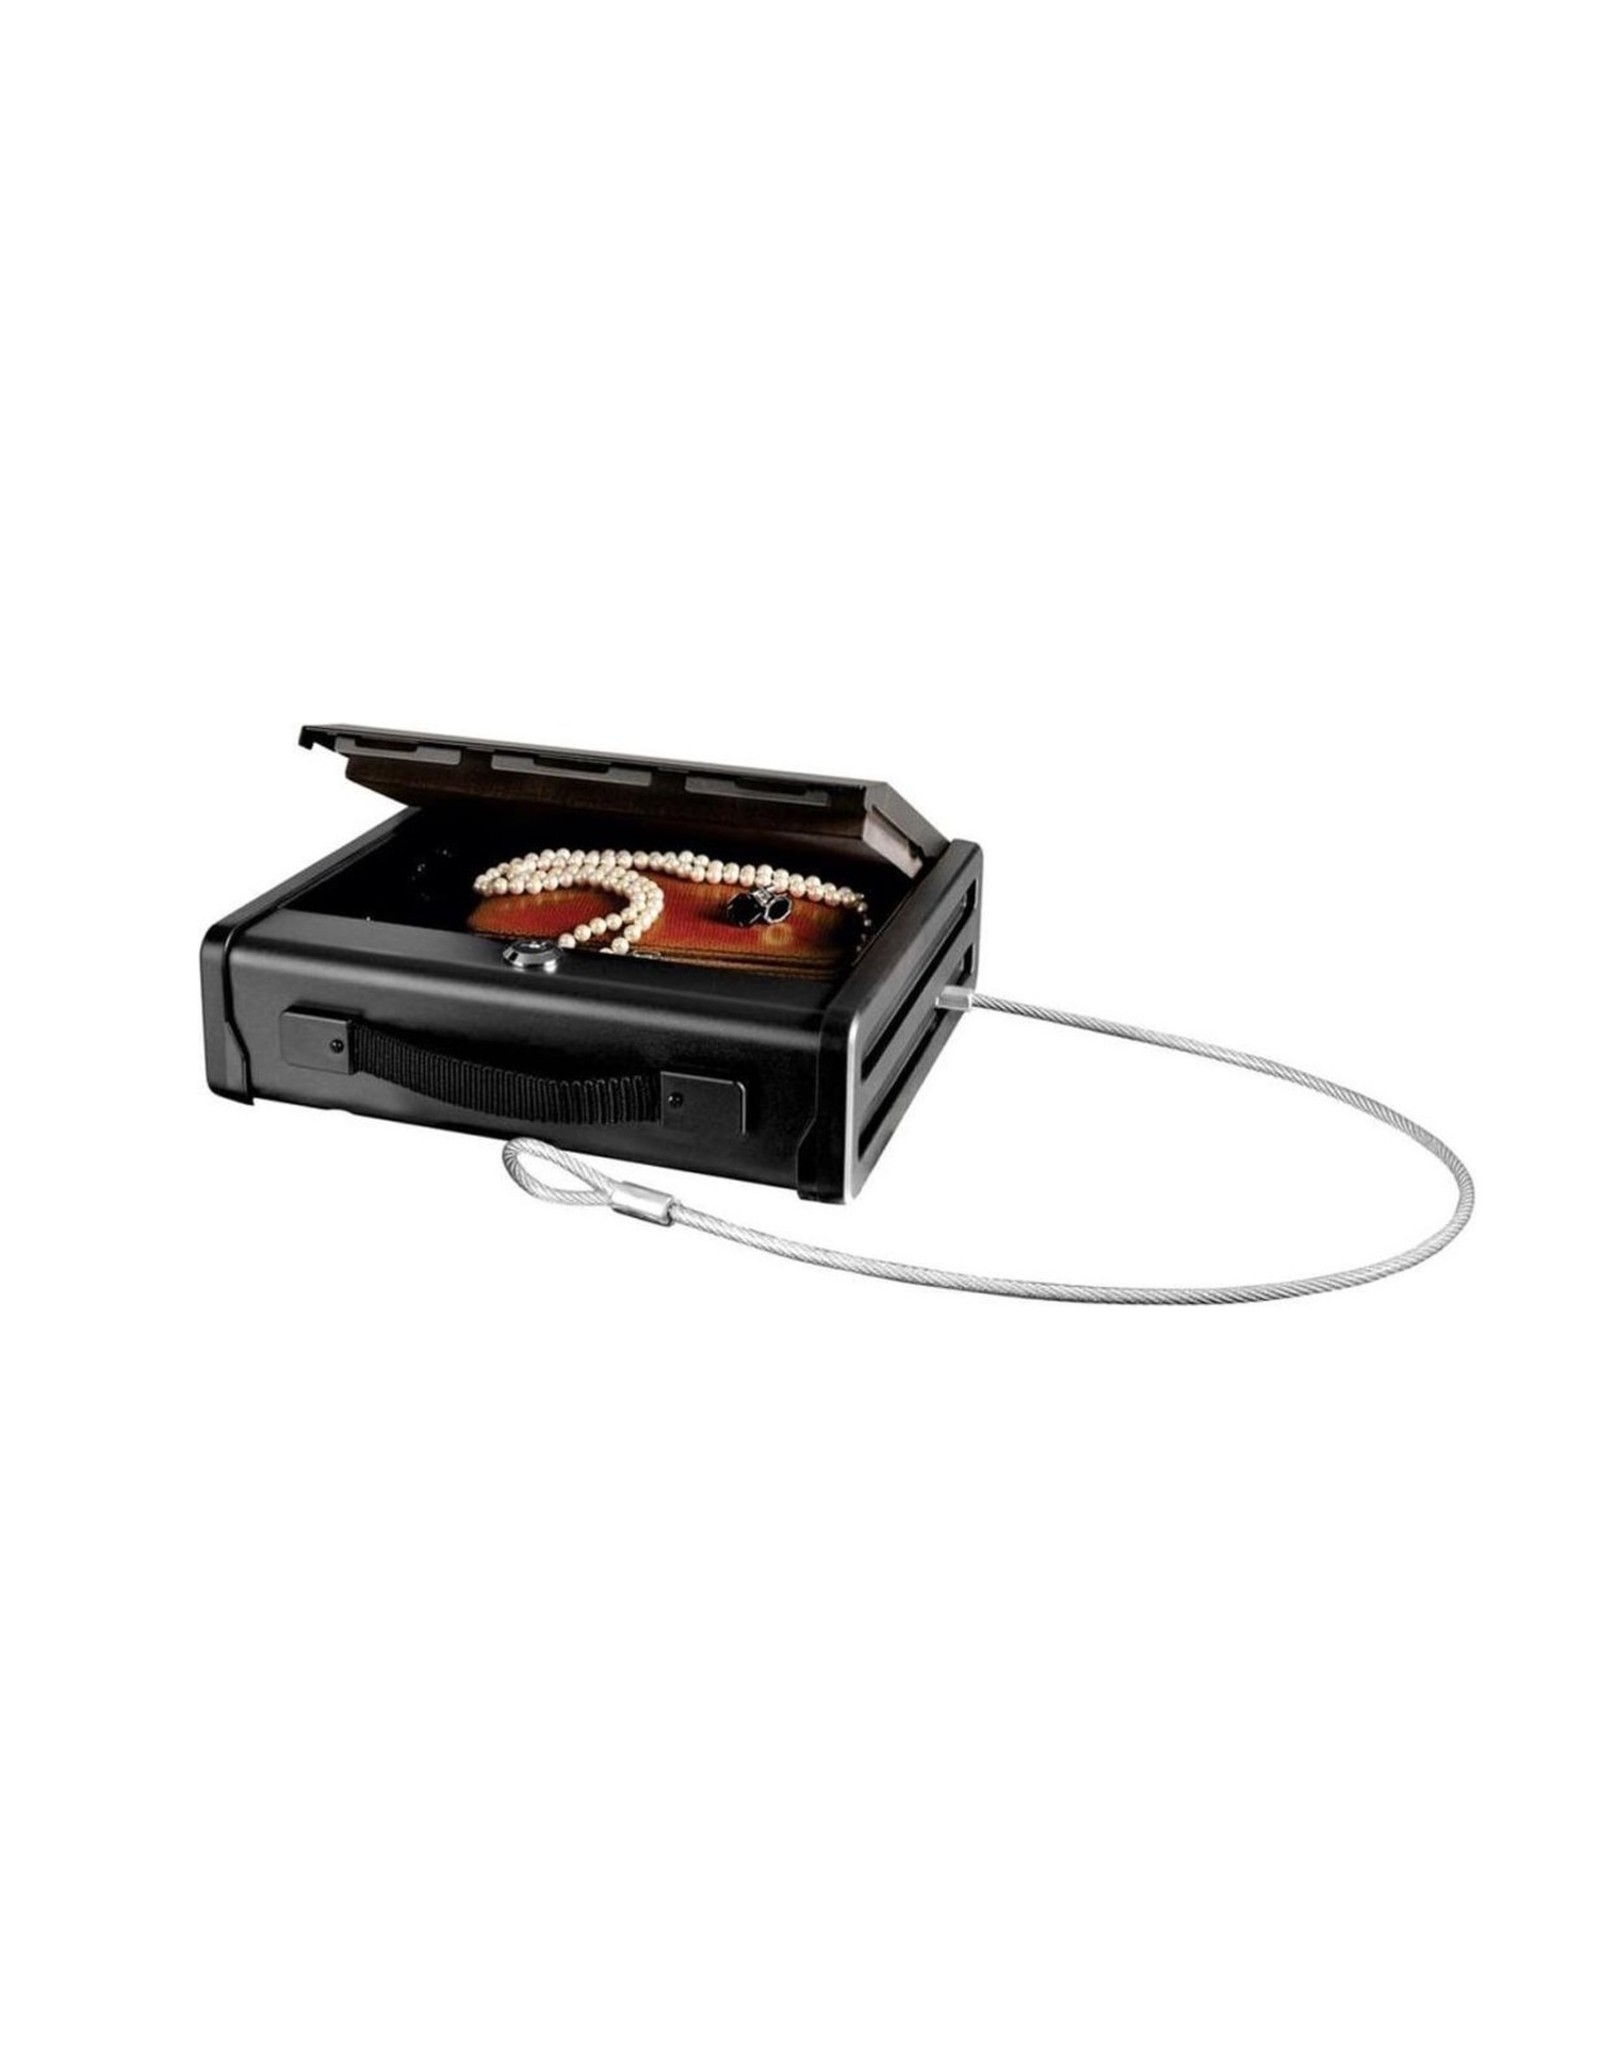 MasterLock MasterLock - Compact Safe PP1KML - With Cable